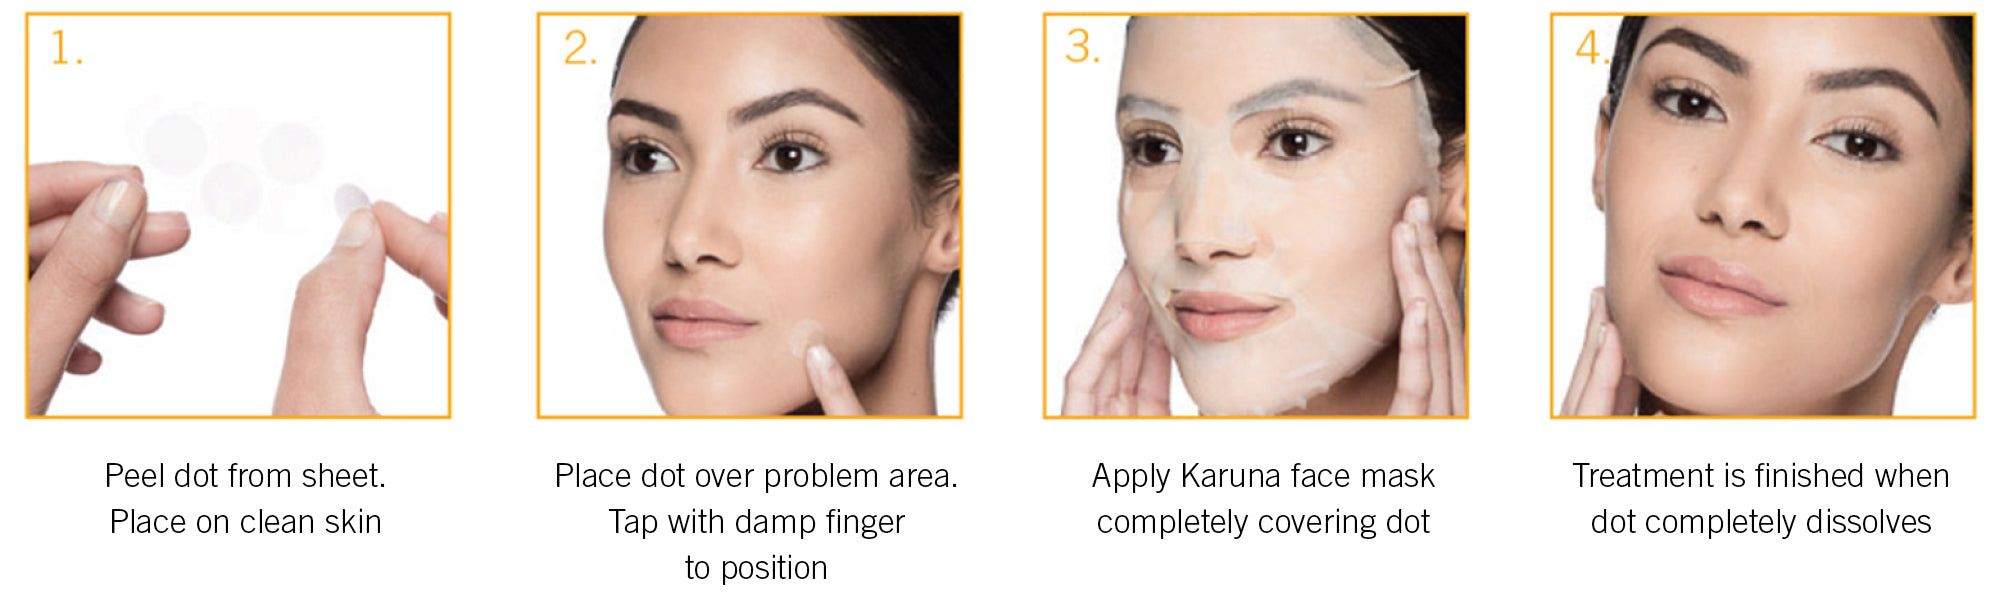 How to Use Karuna Skin Care Boosts